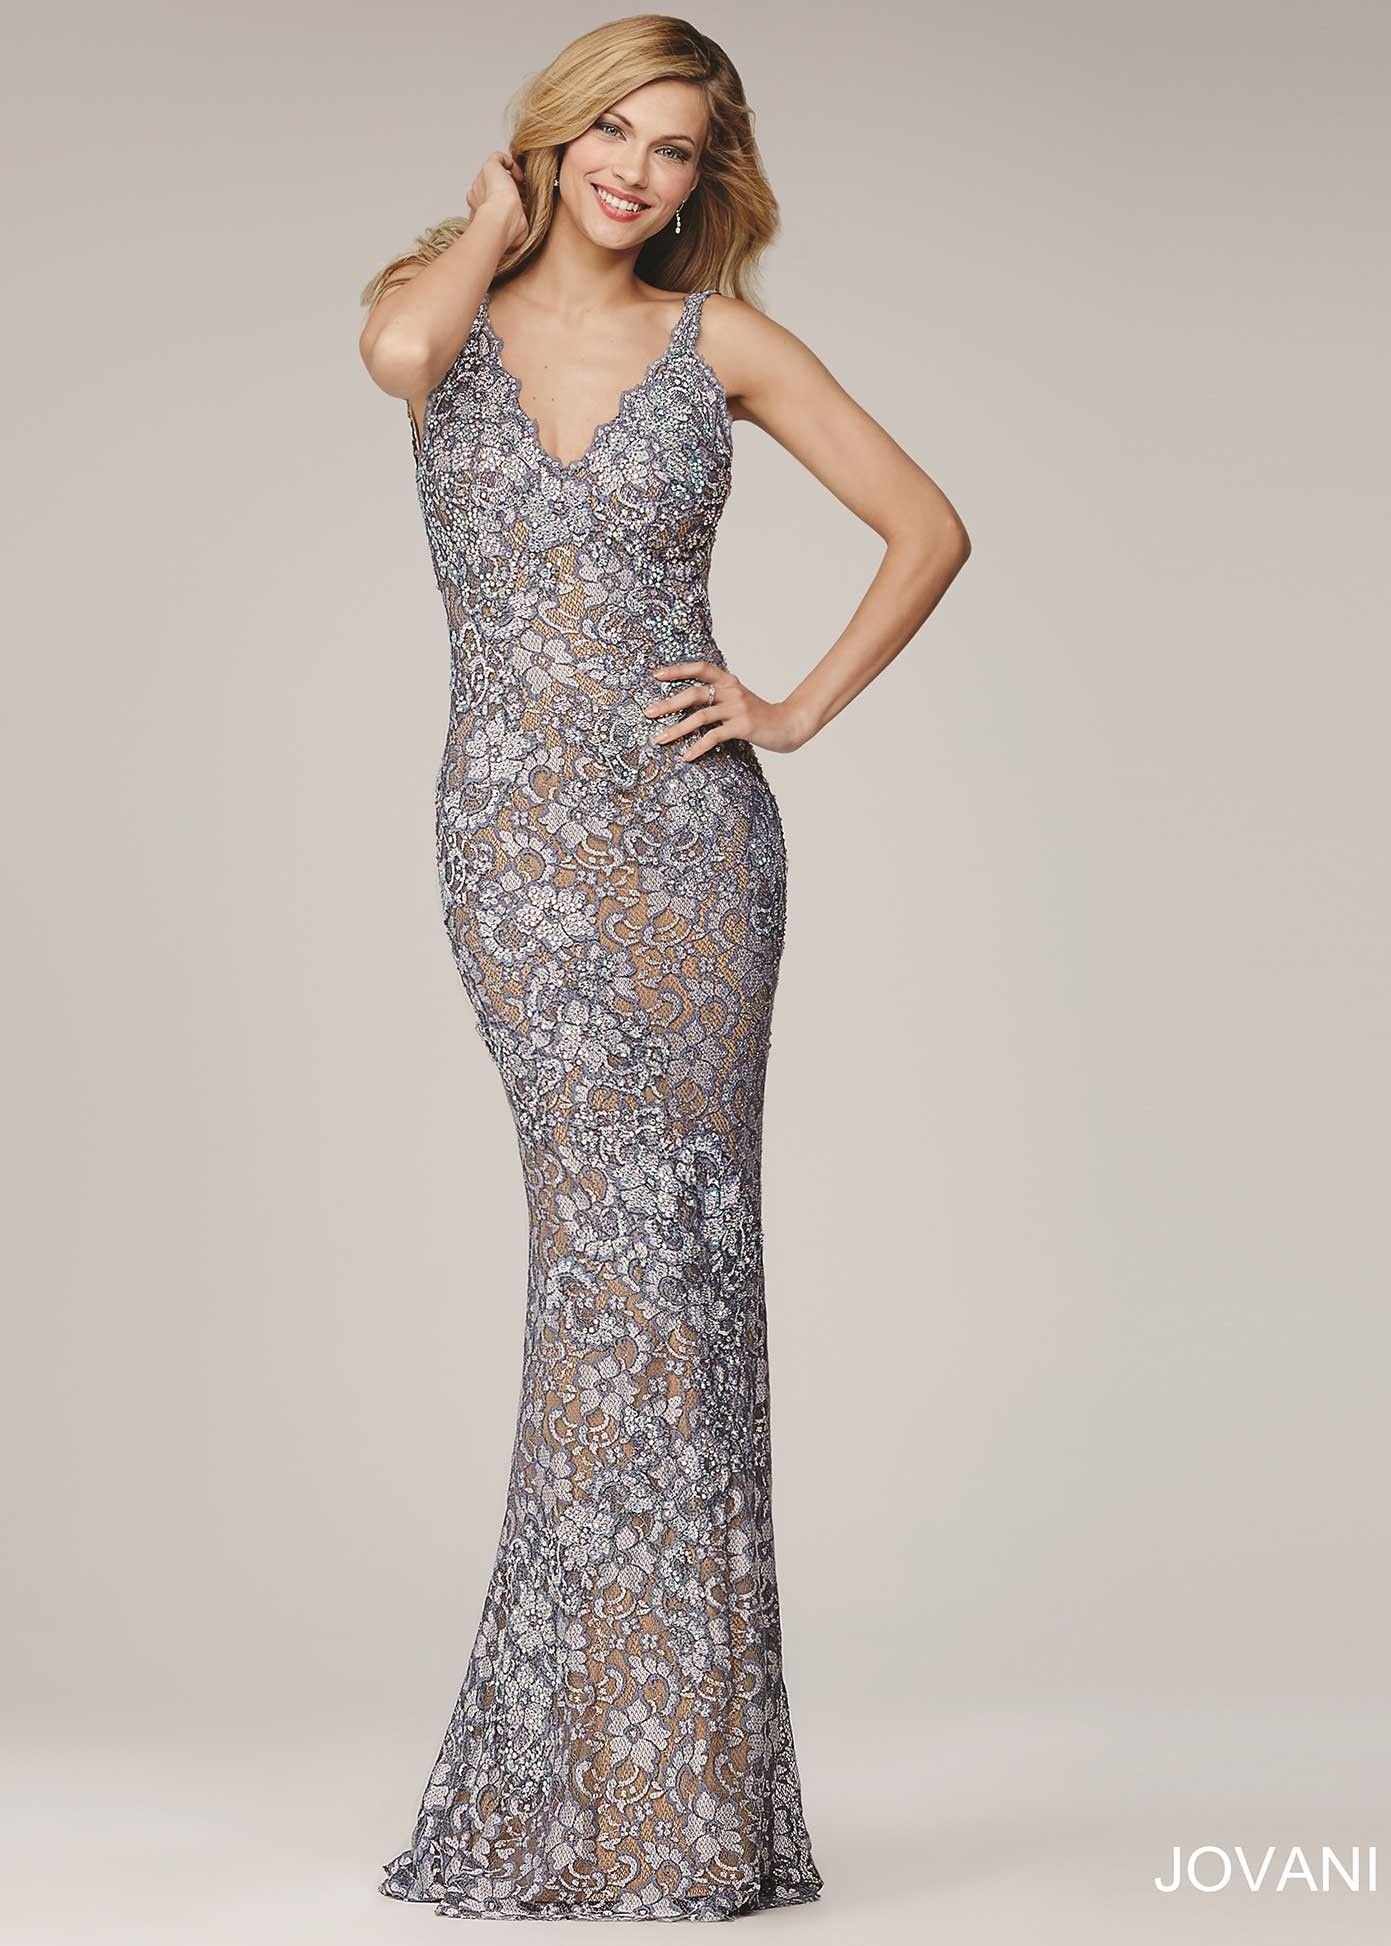 a99155c9372 Jovani 26533 Silver Nude Magnificent Stretch Lace Open Back Dress ...